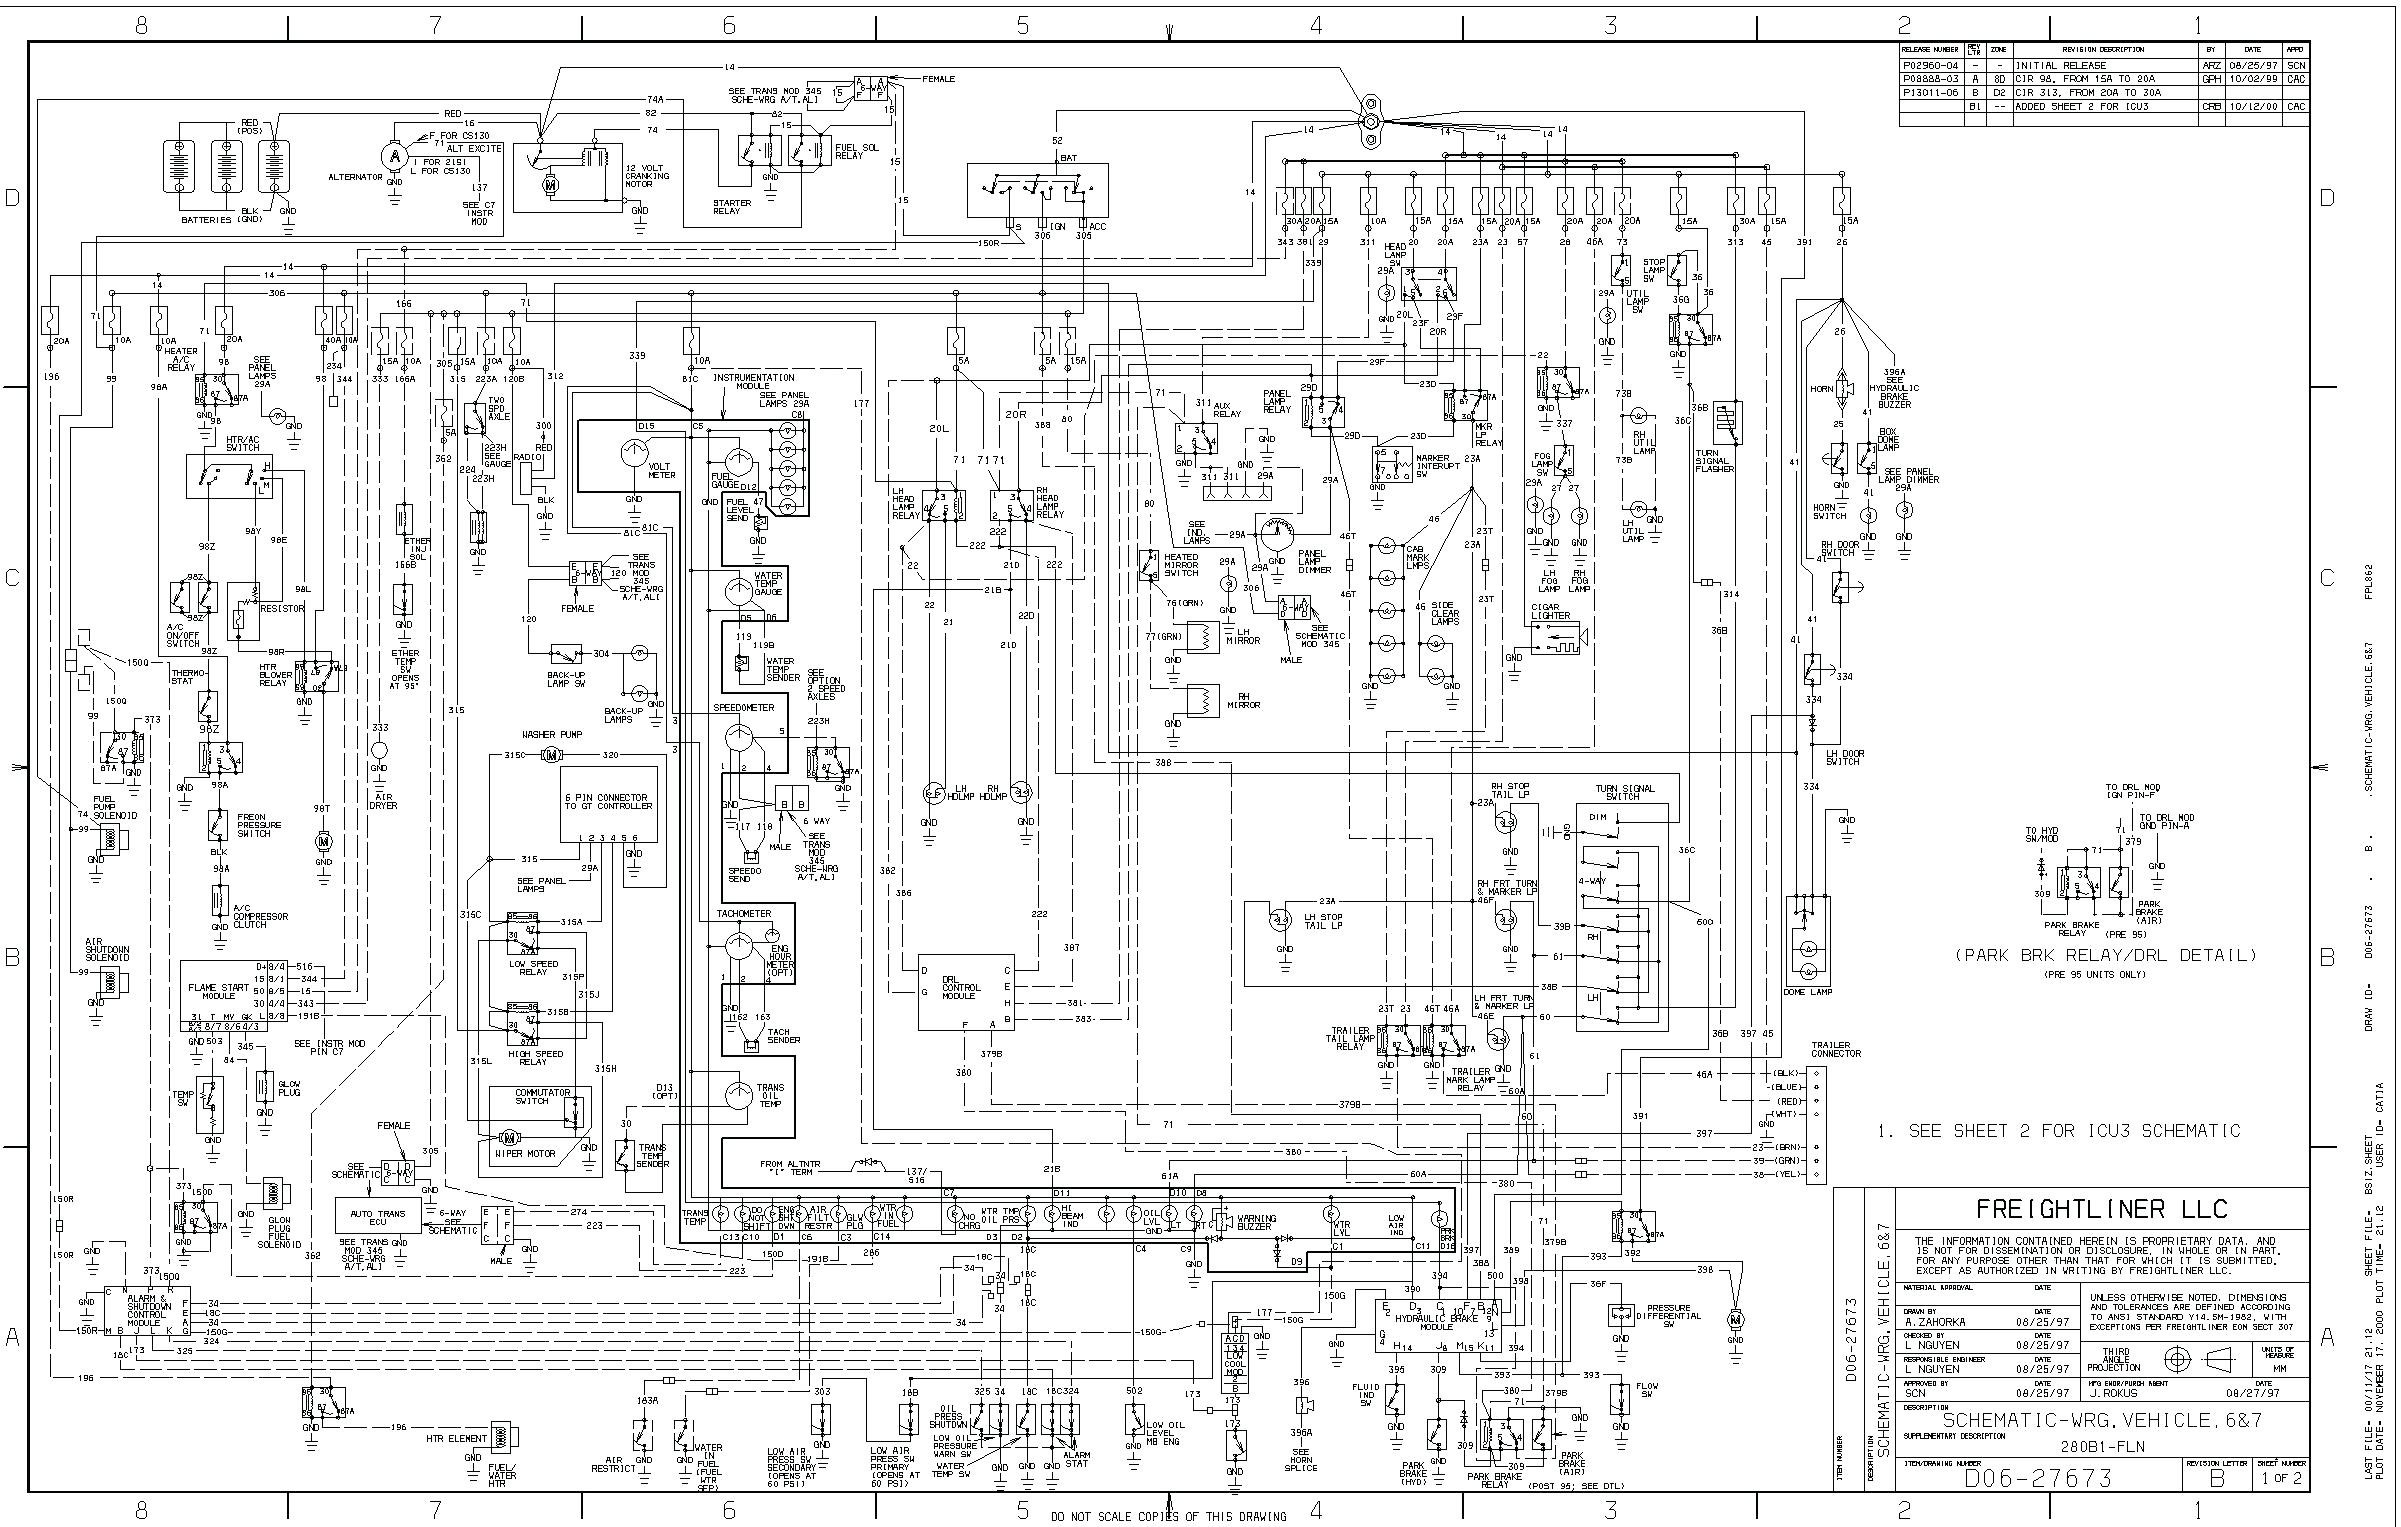 2004 Toyota Camry Engine Diagram Part 1 Of 10 Remove Tranny 1994 1996 Wiring Great Chassis In Alternator